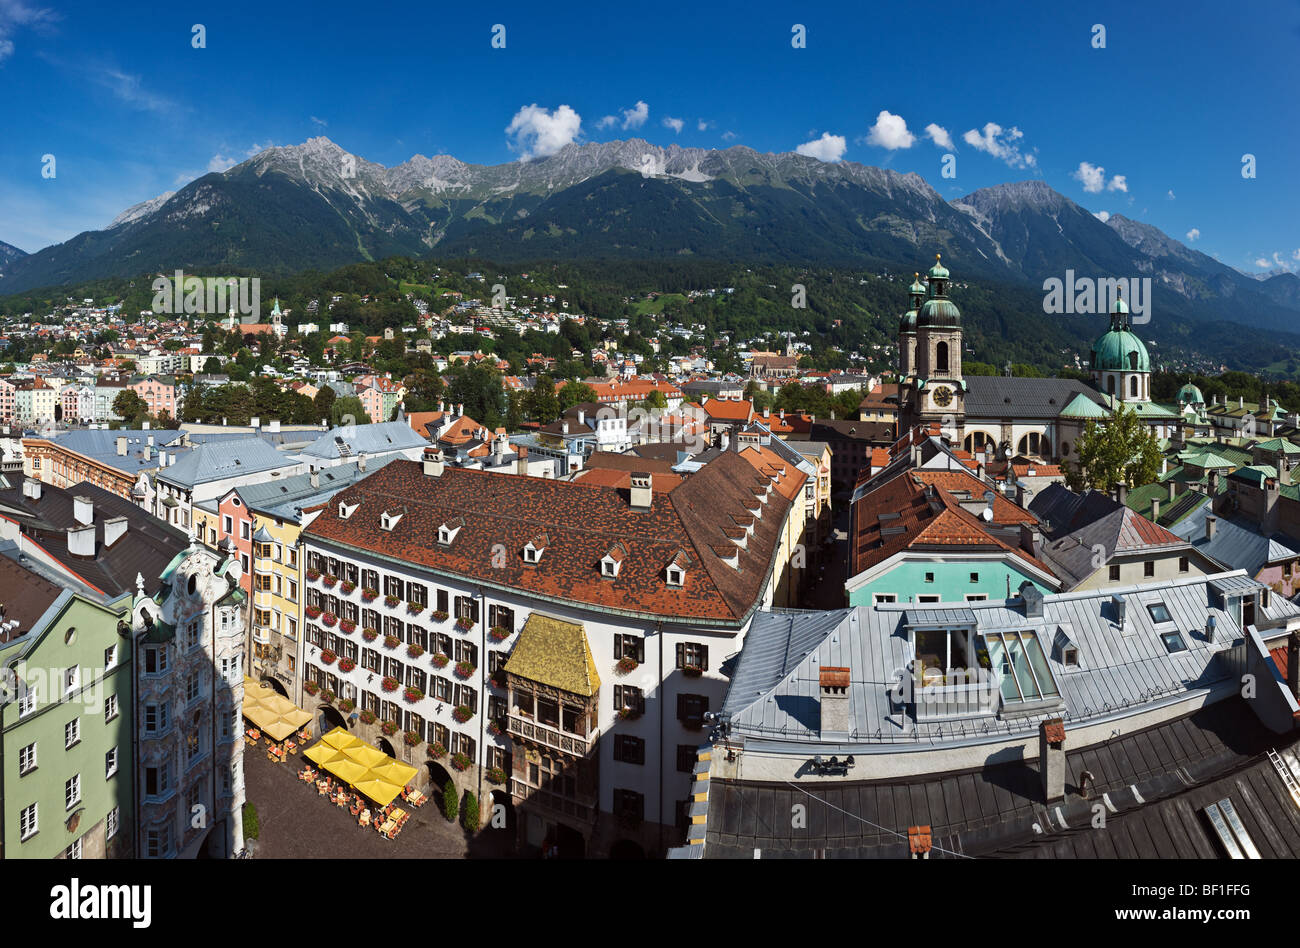 Panoramic view over Innsbruck city center and surrounding mountains, Tirol, Austria - Stock Image